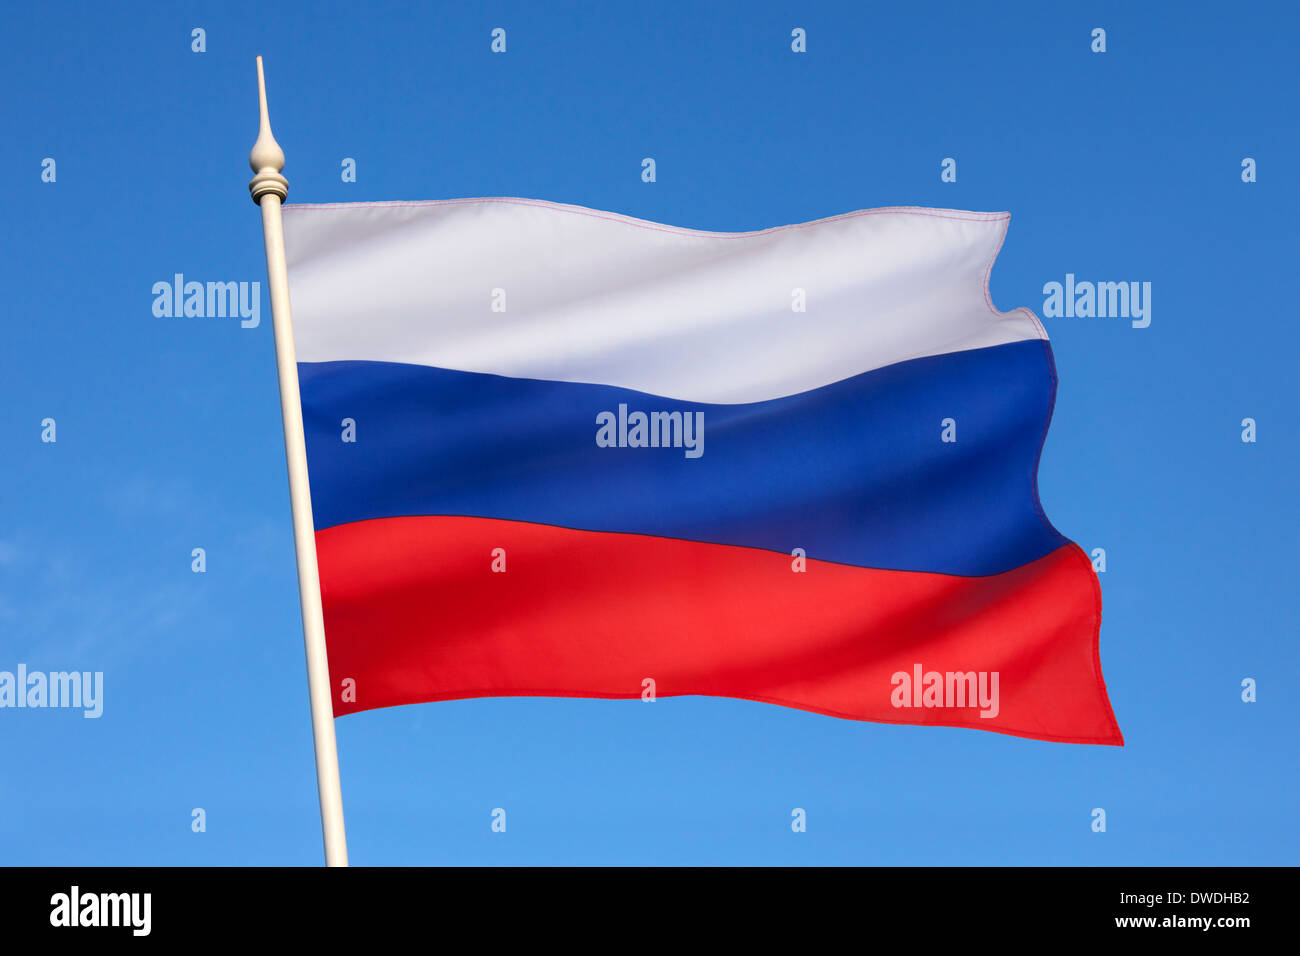 State flag of the Russian Federation. - Stock Image